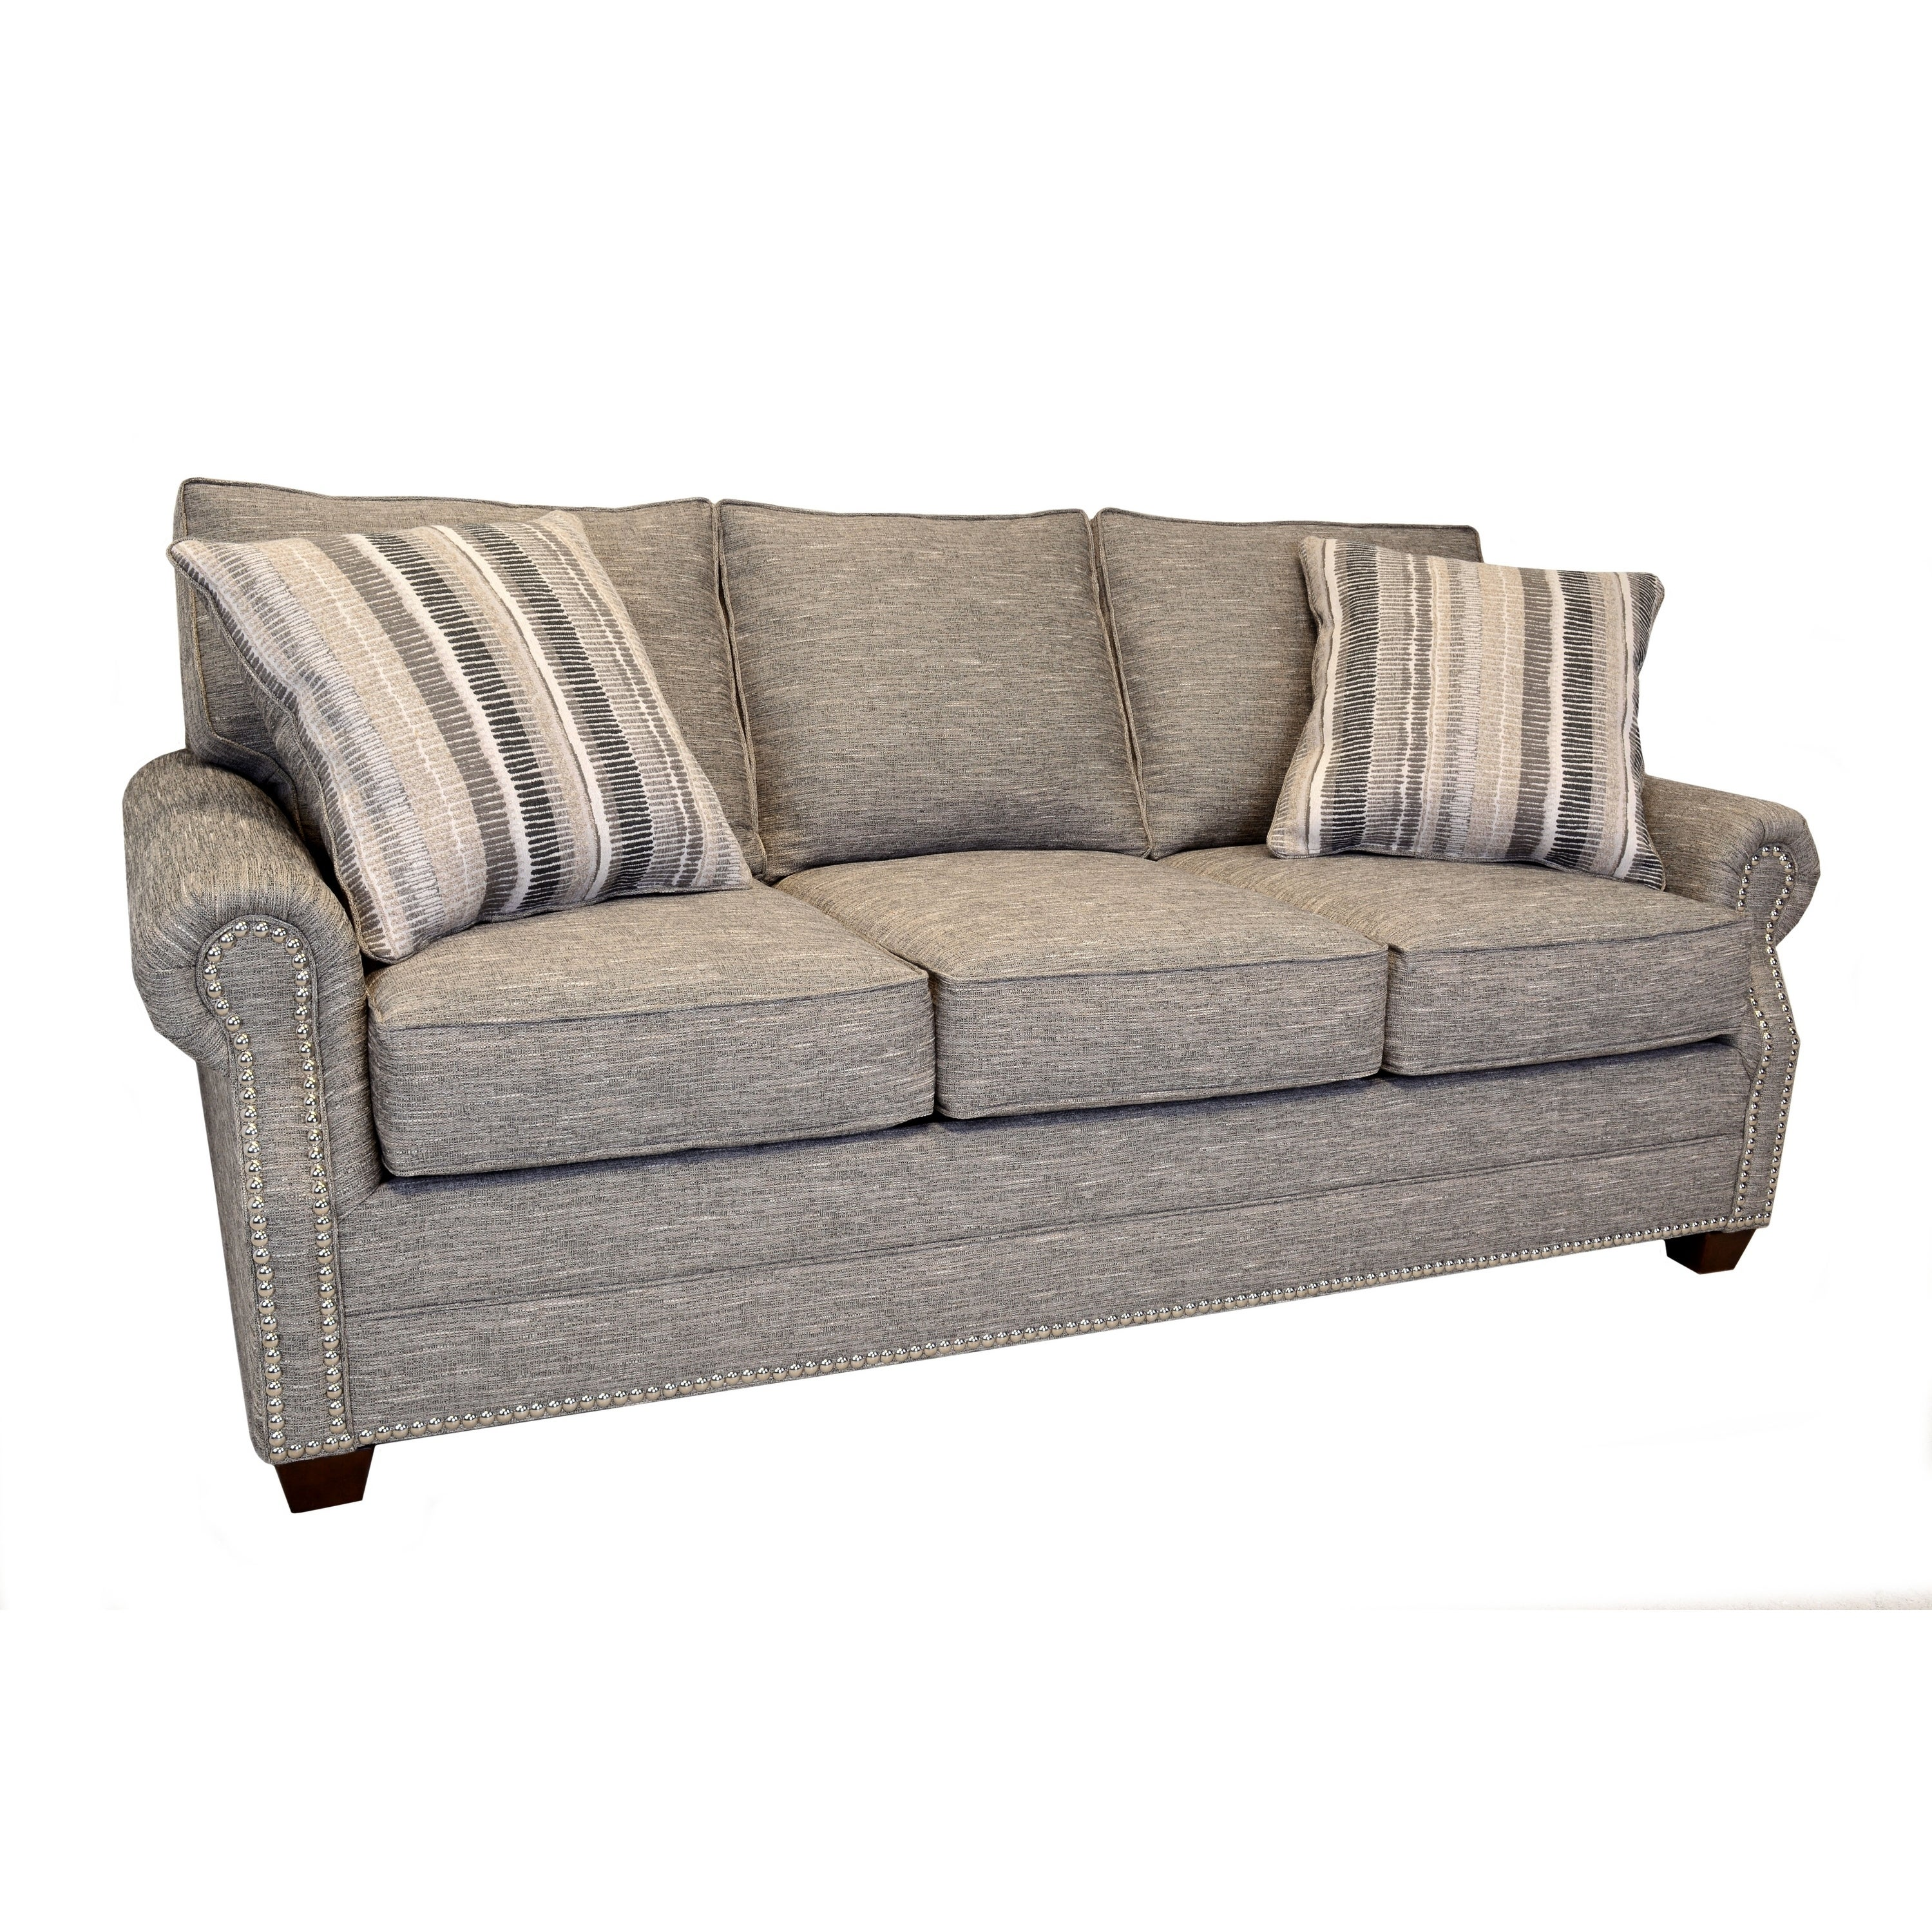 Fantastic Buy Round Arms Nailheads Sofas Couches Online At Cjindustries Chair Design For Home Cjindustriesco